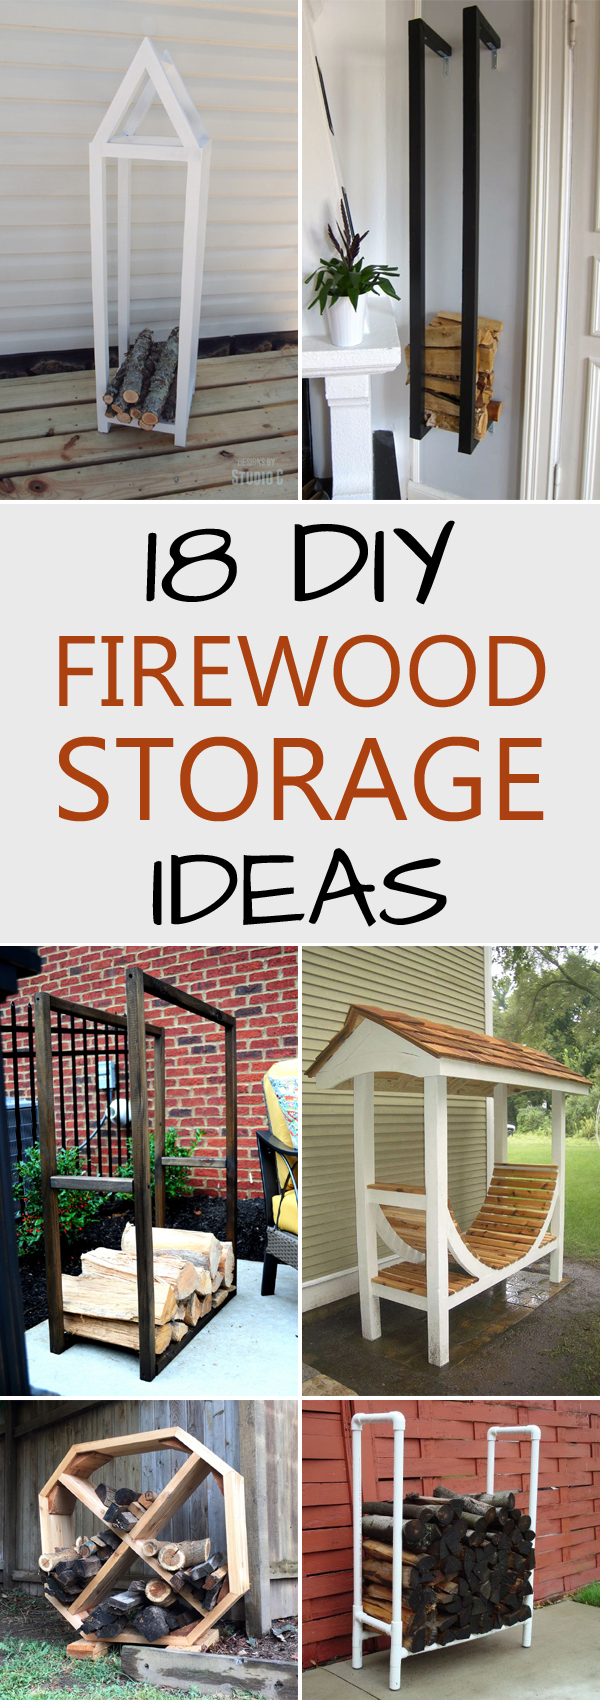 18 Best Best Gifts For 19 Year Old Girls Images On: 18 Best DIY Firewood Storage Ideas